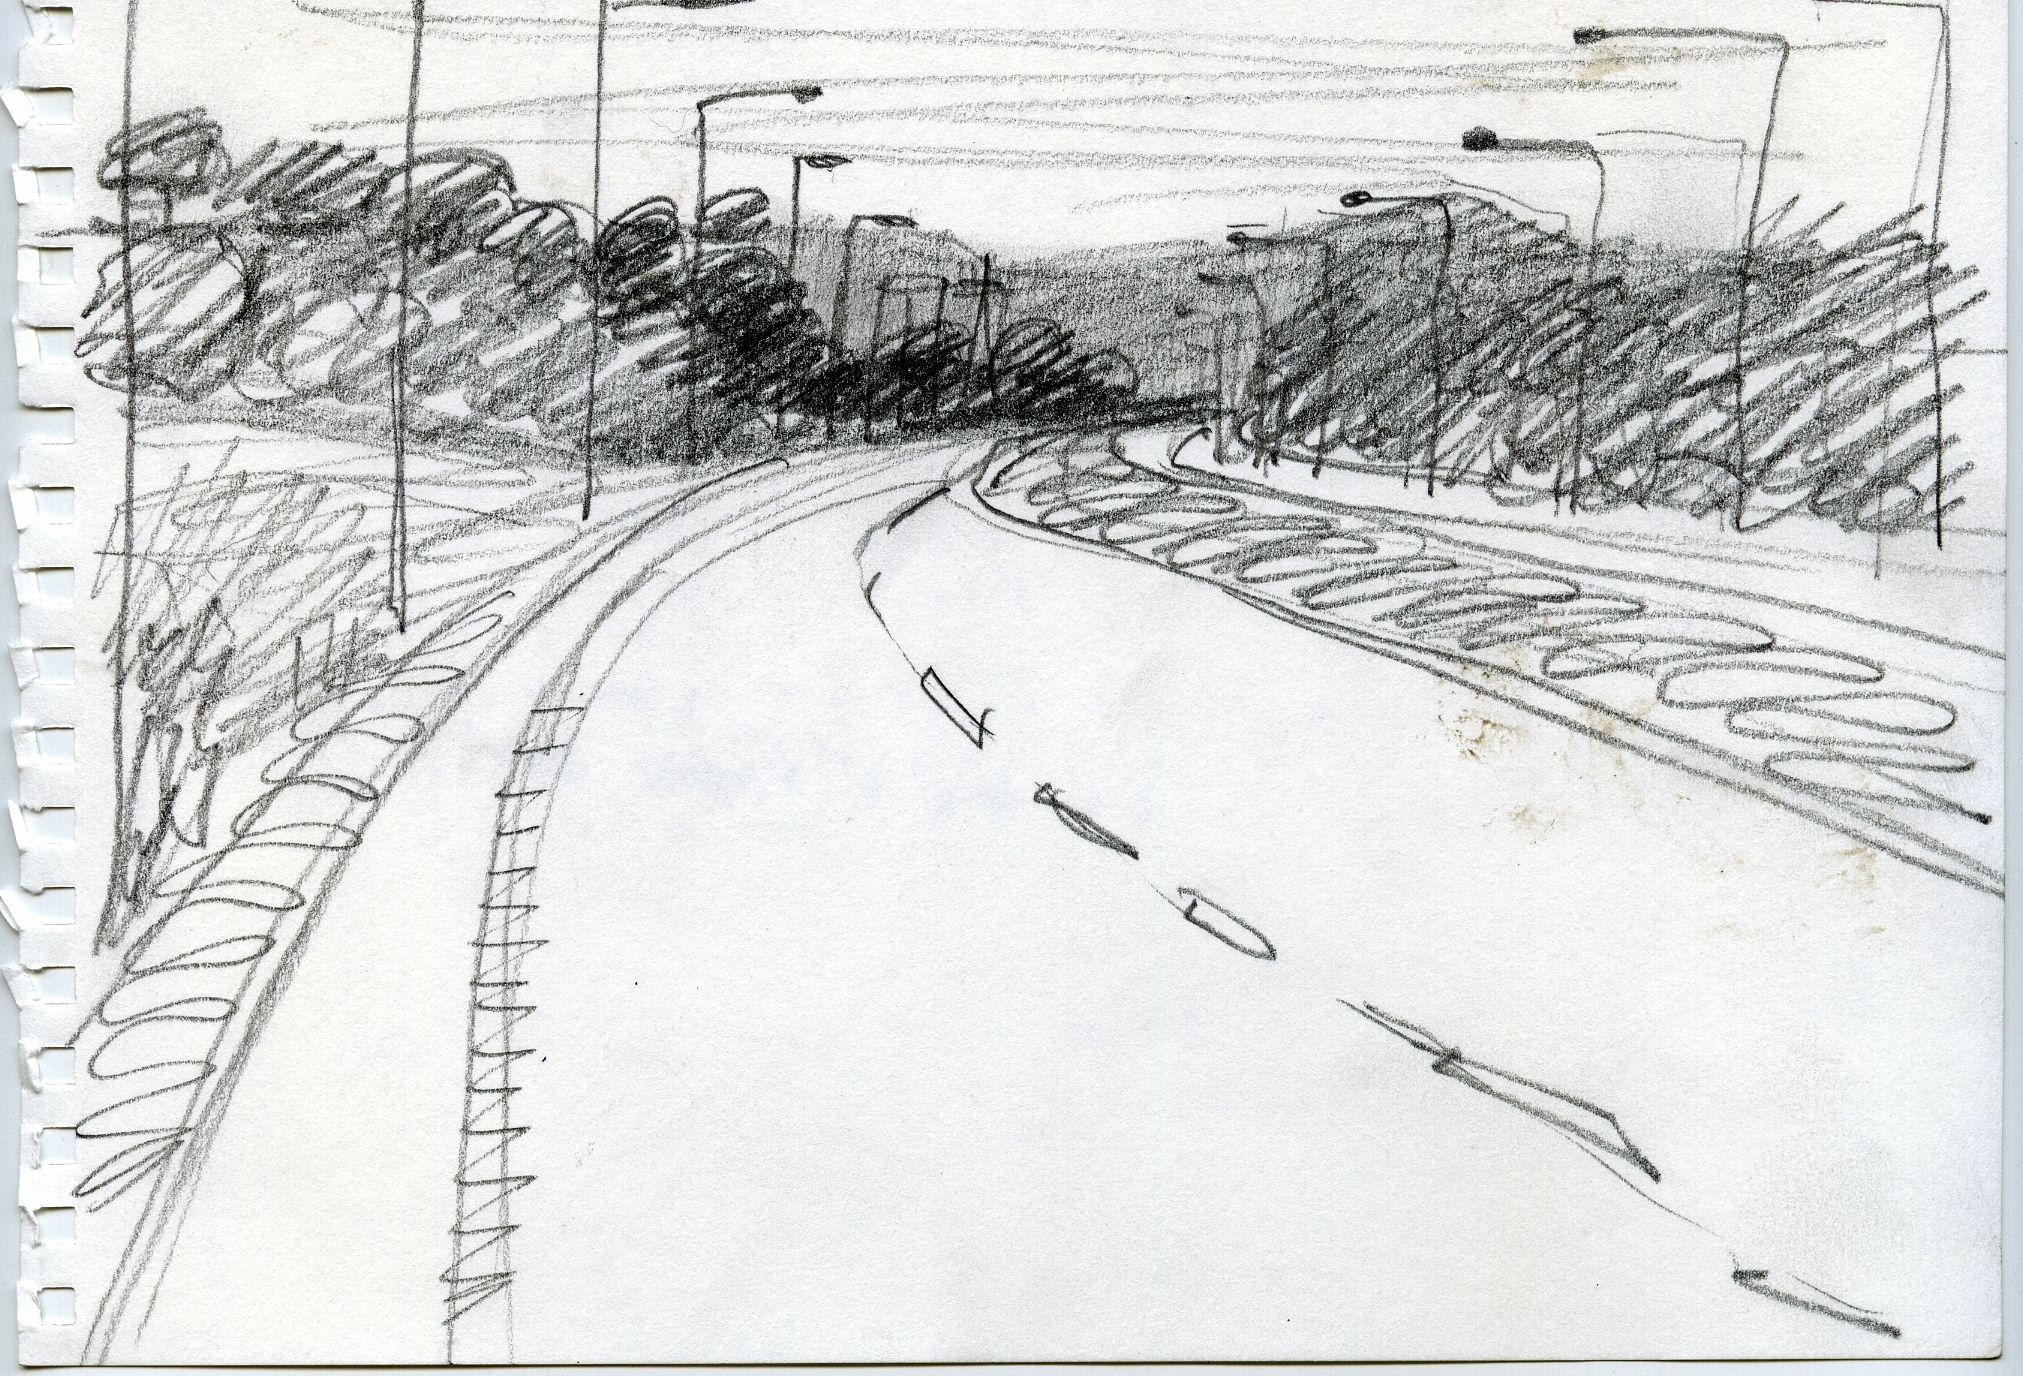 road drawing black and white - Google Search | Drawing | Pinterest